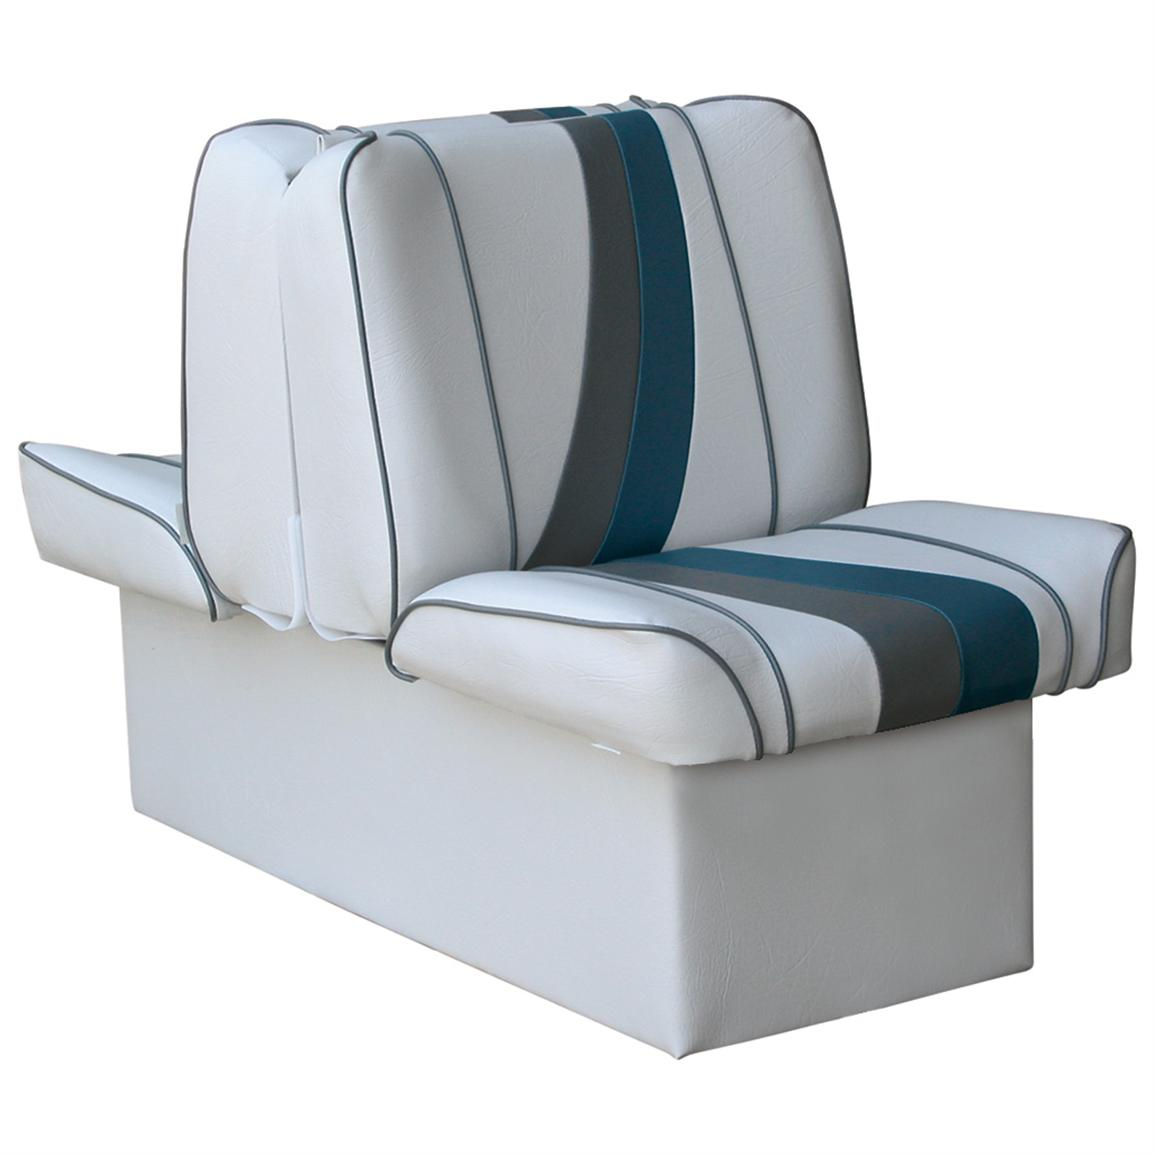 Wise Deluxe Lounge Seat